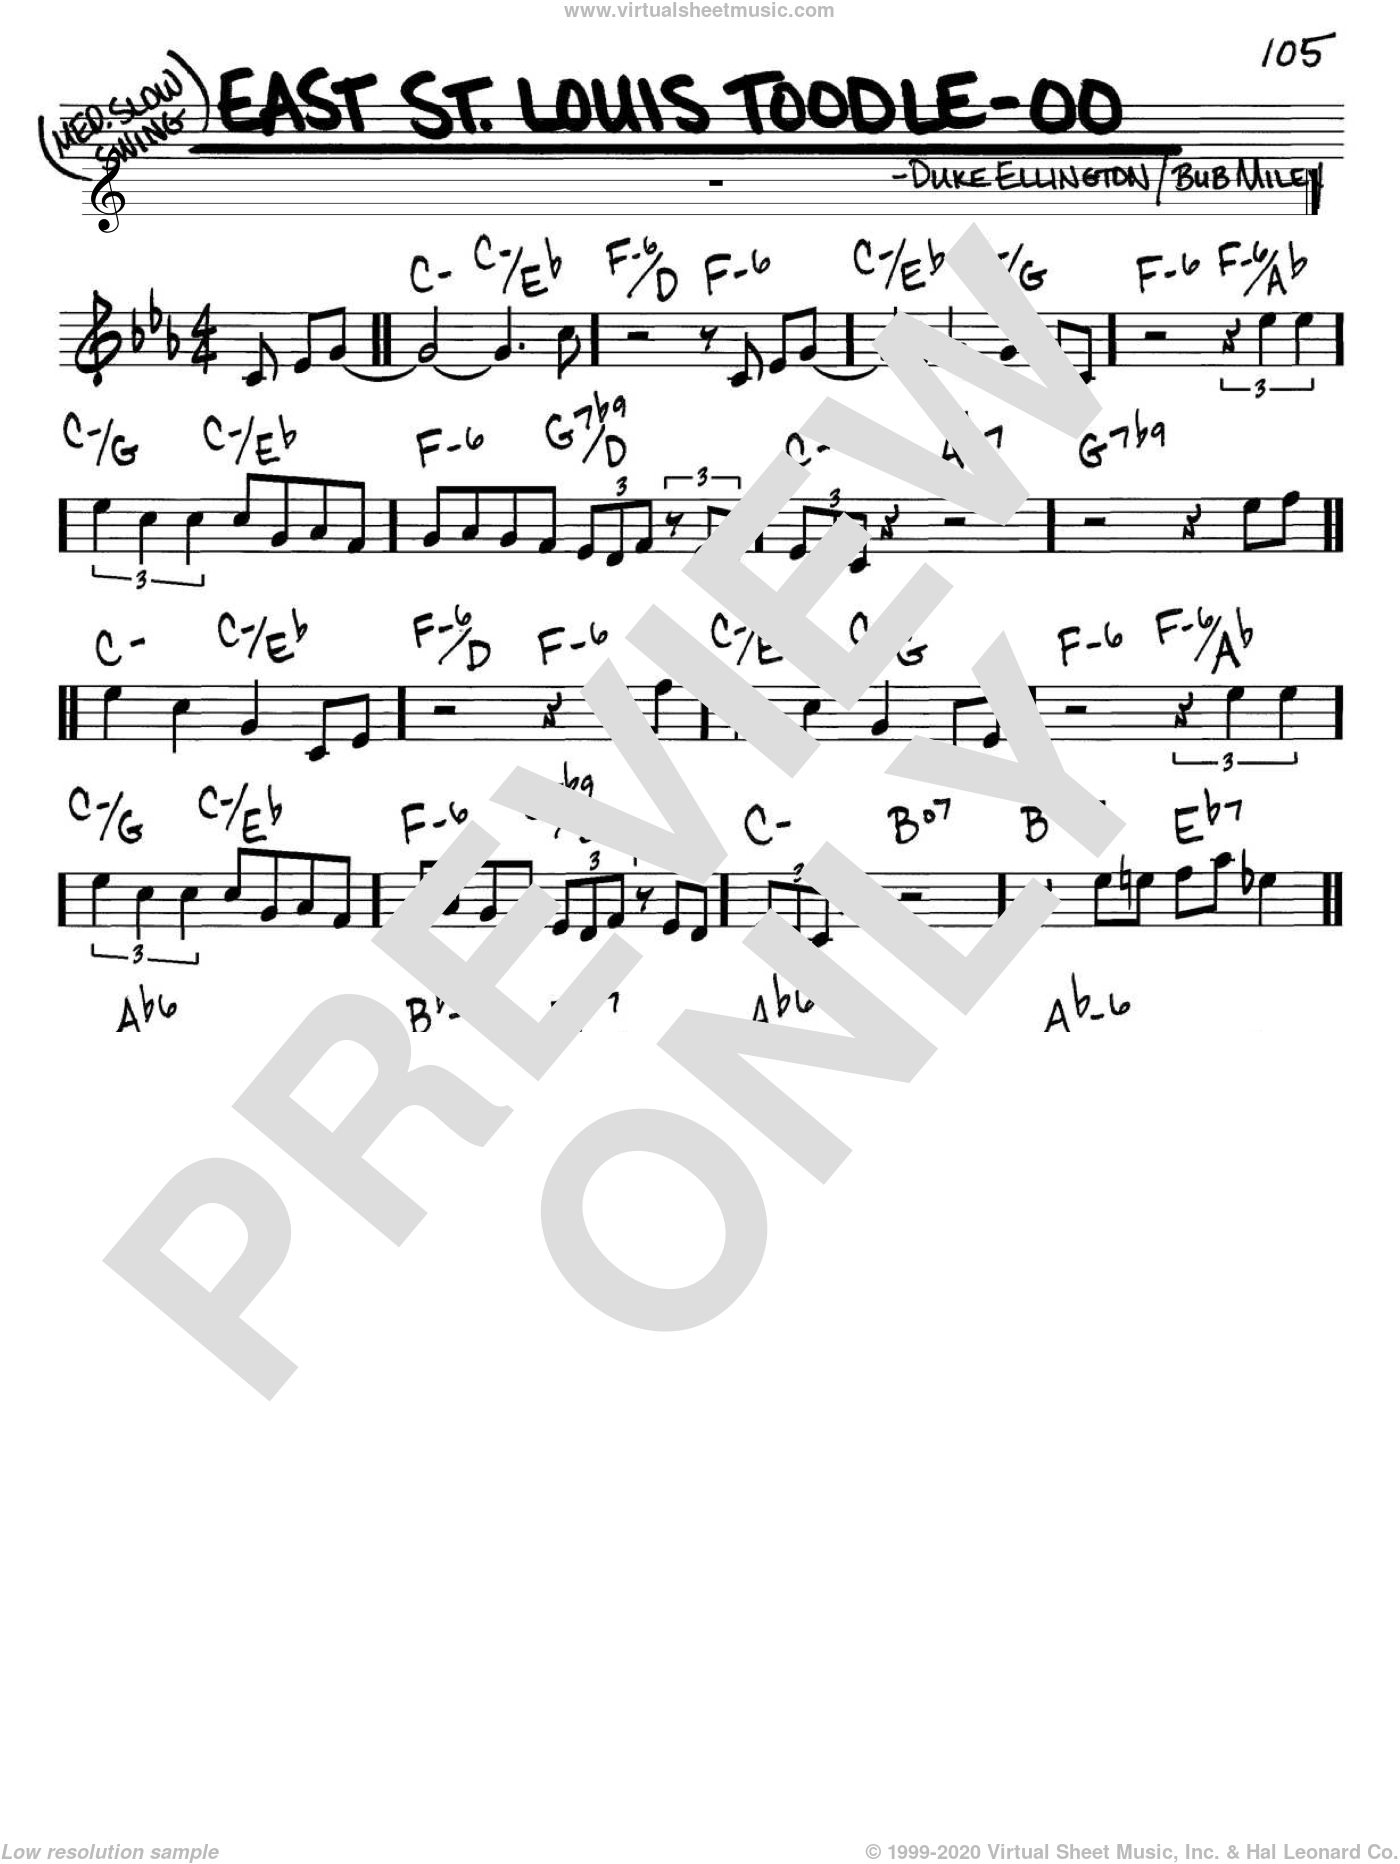 East St. Louis Toodle-oo sheet music for voice and other instruments (C) by Duke Ellington and Bubber Miley, intermediate voice. Score Image Preview.